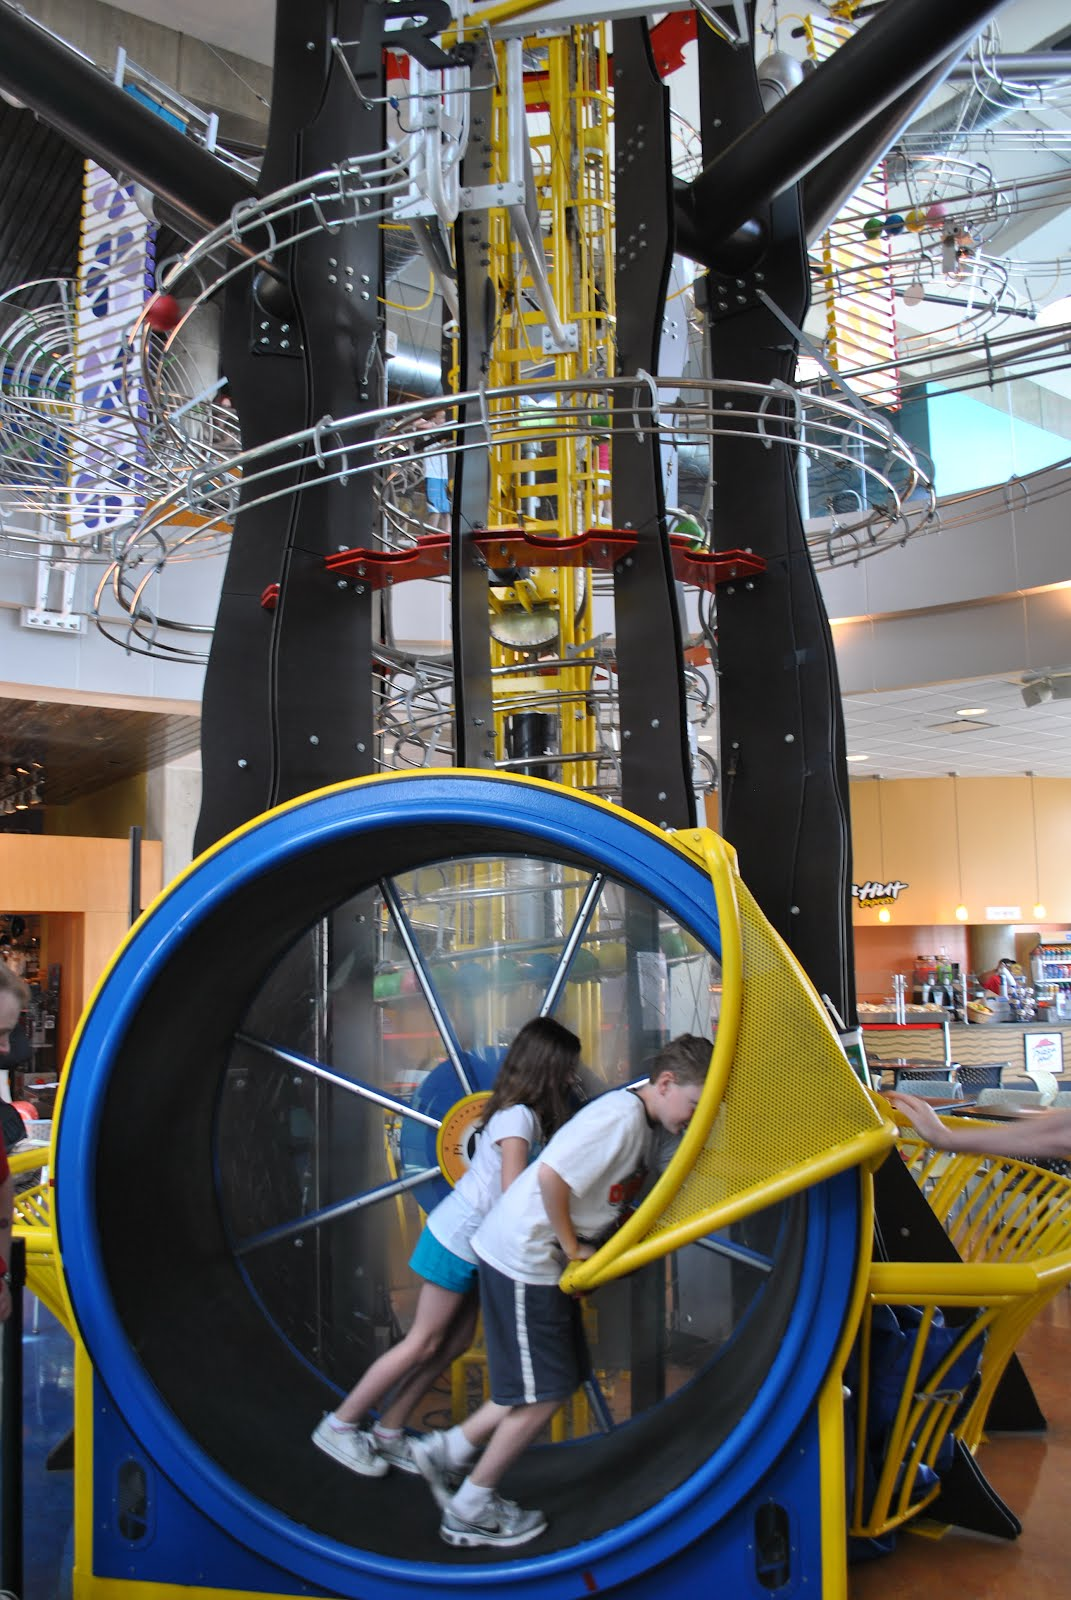 museum science center interactive exhibits omnimax park louis forest st exhibition imax indoor playground exhibit theater children many within another